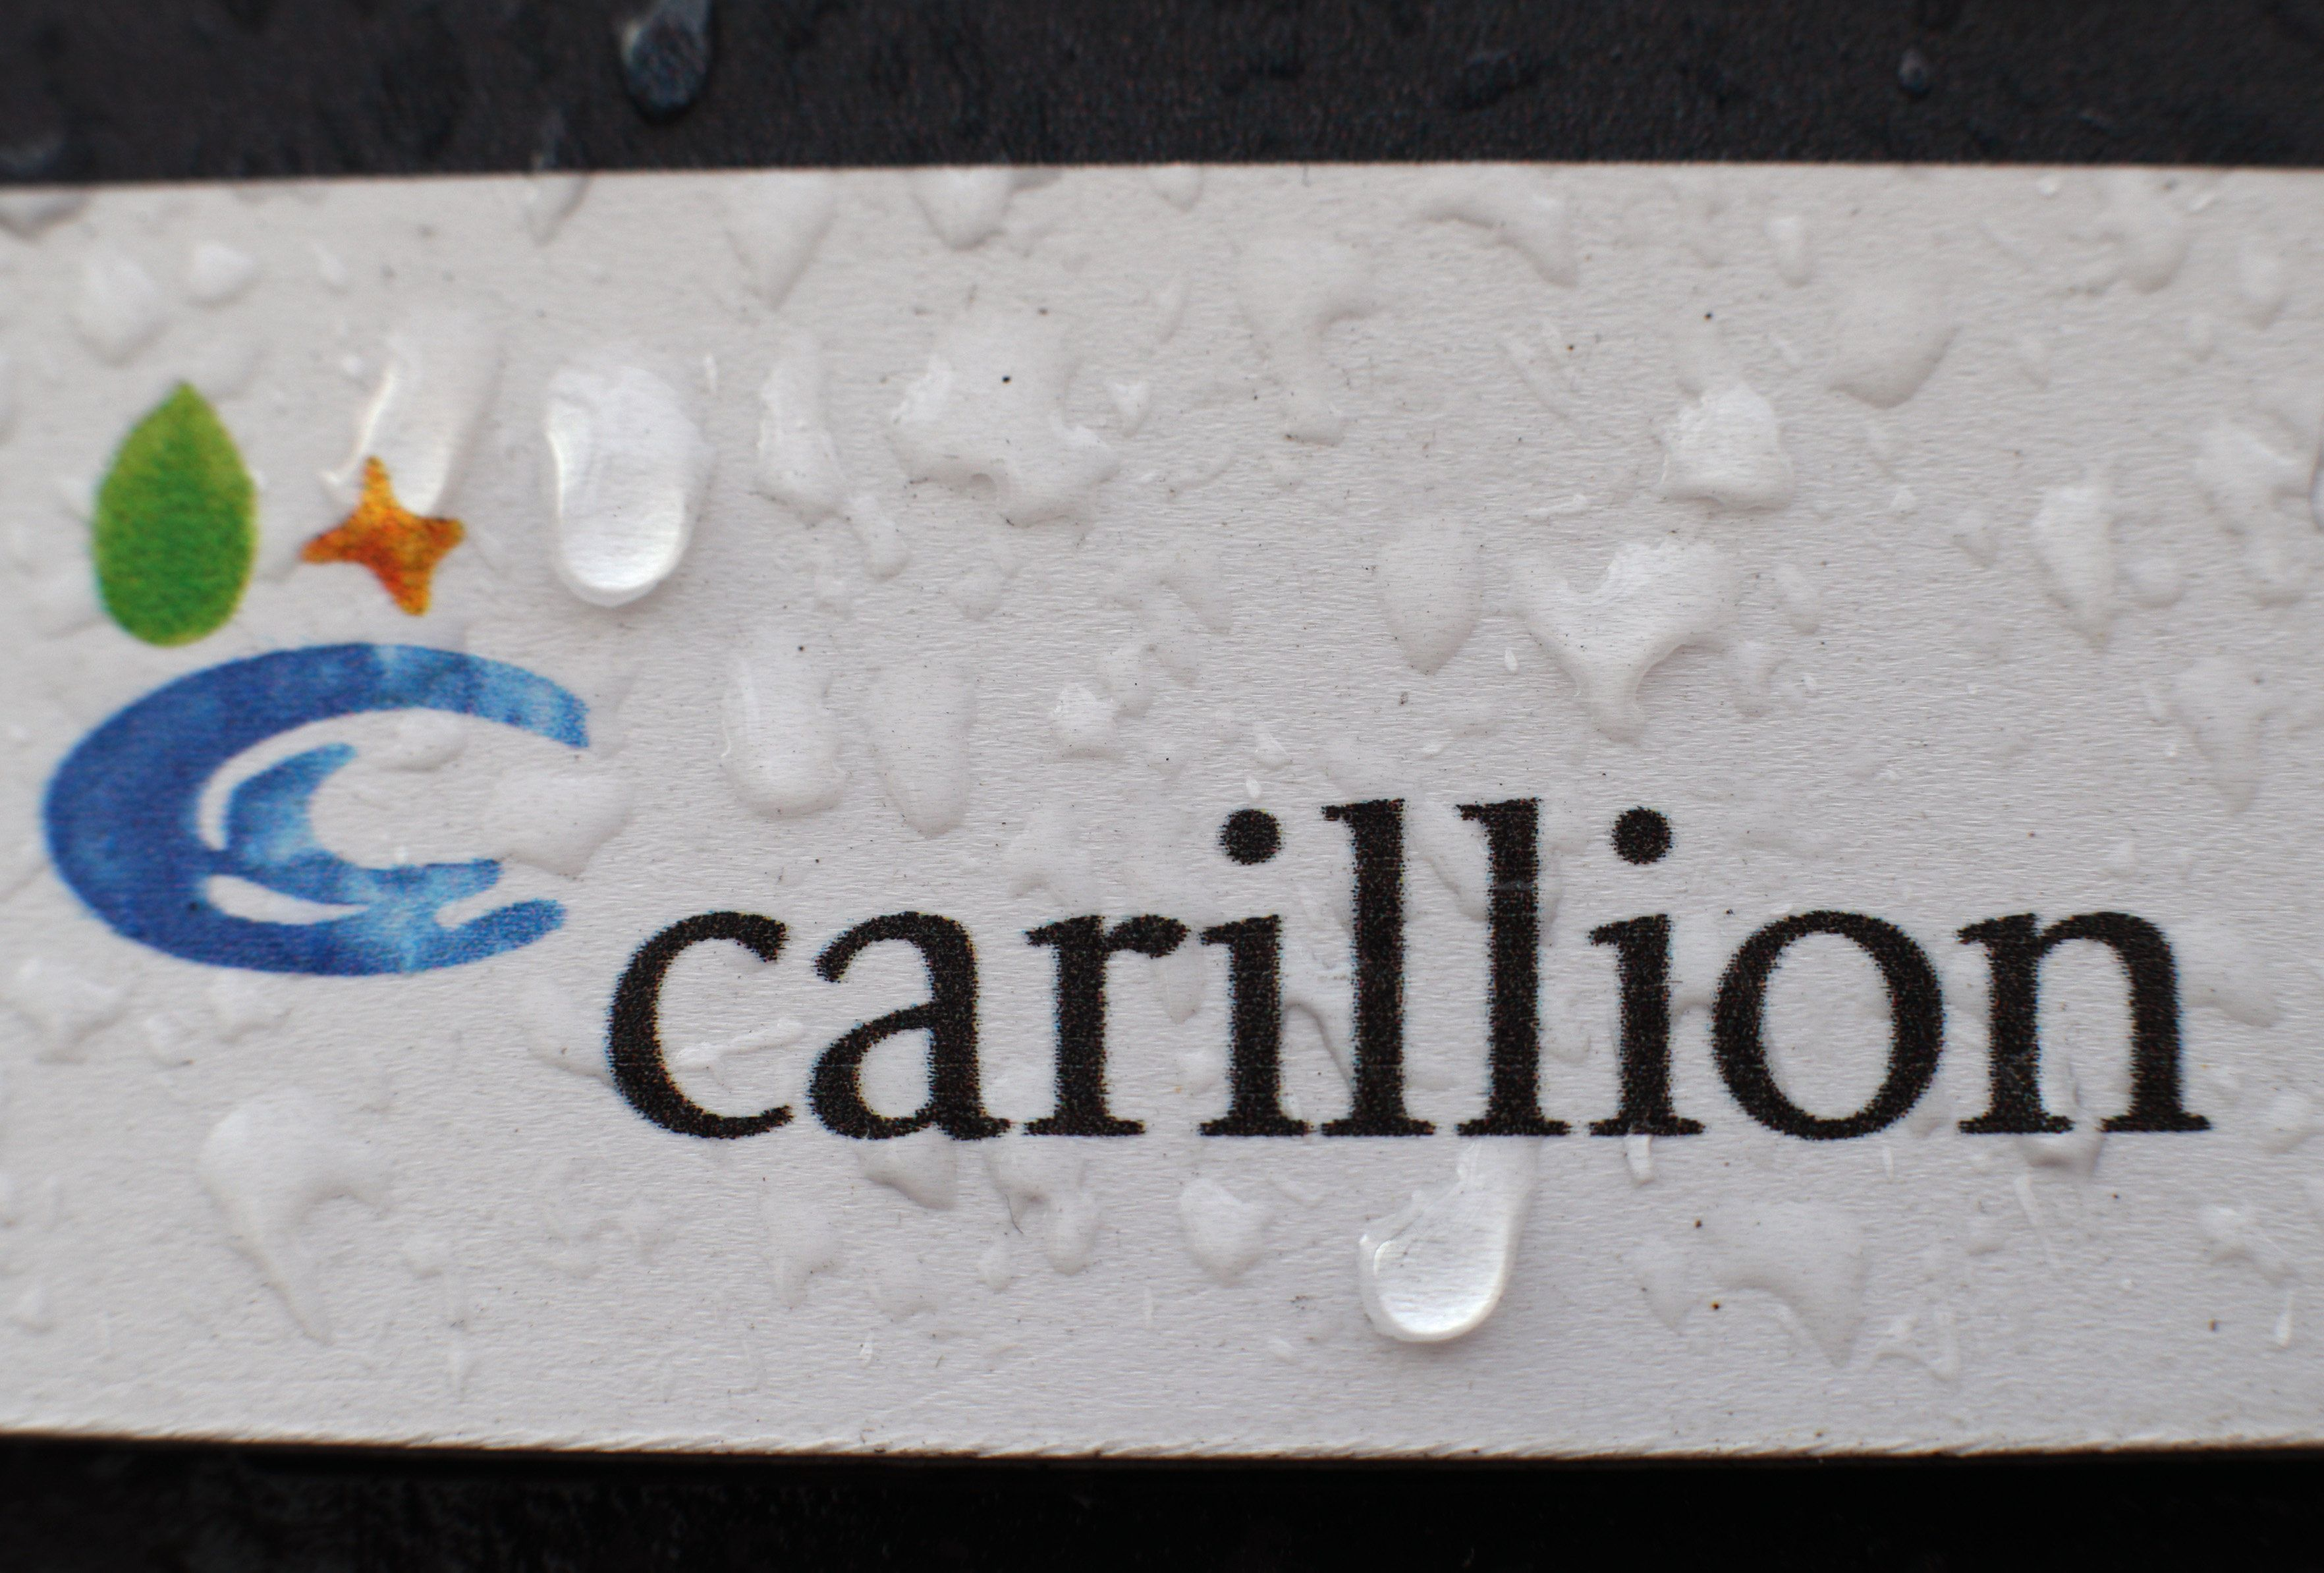 Carillion's Canada wing not in liquidation; North Battleford hospital project not impacted